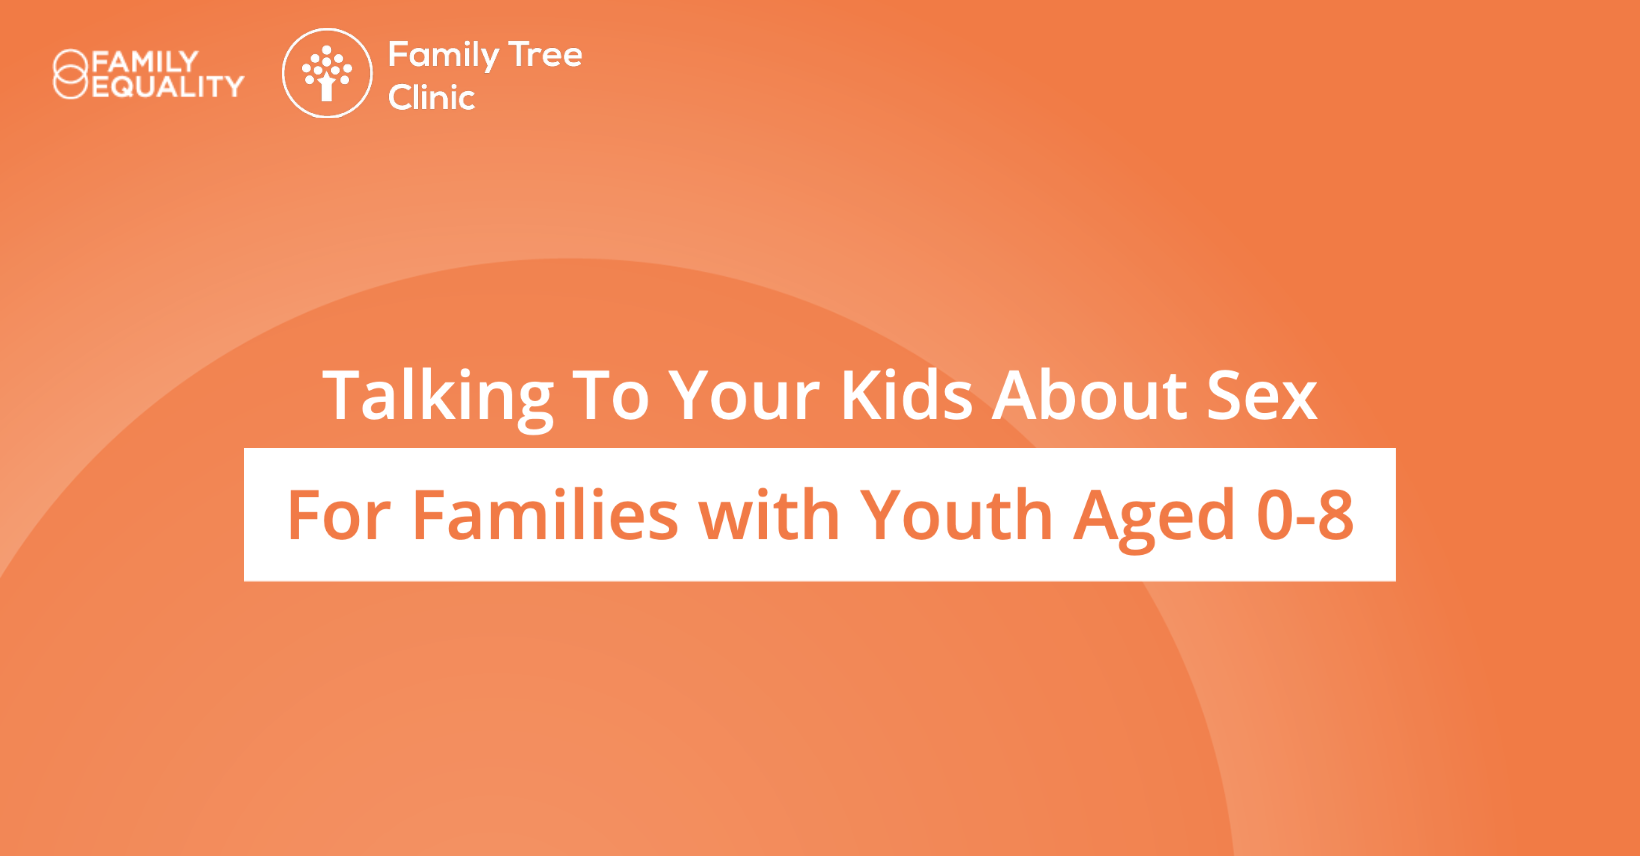 Talking to Your Kids About Sex for Families with Youth Ages 0-8